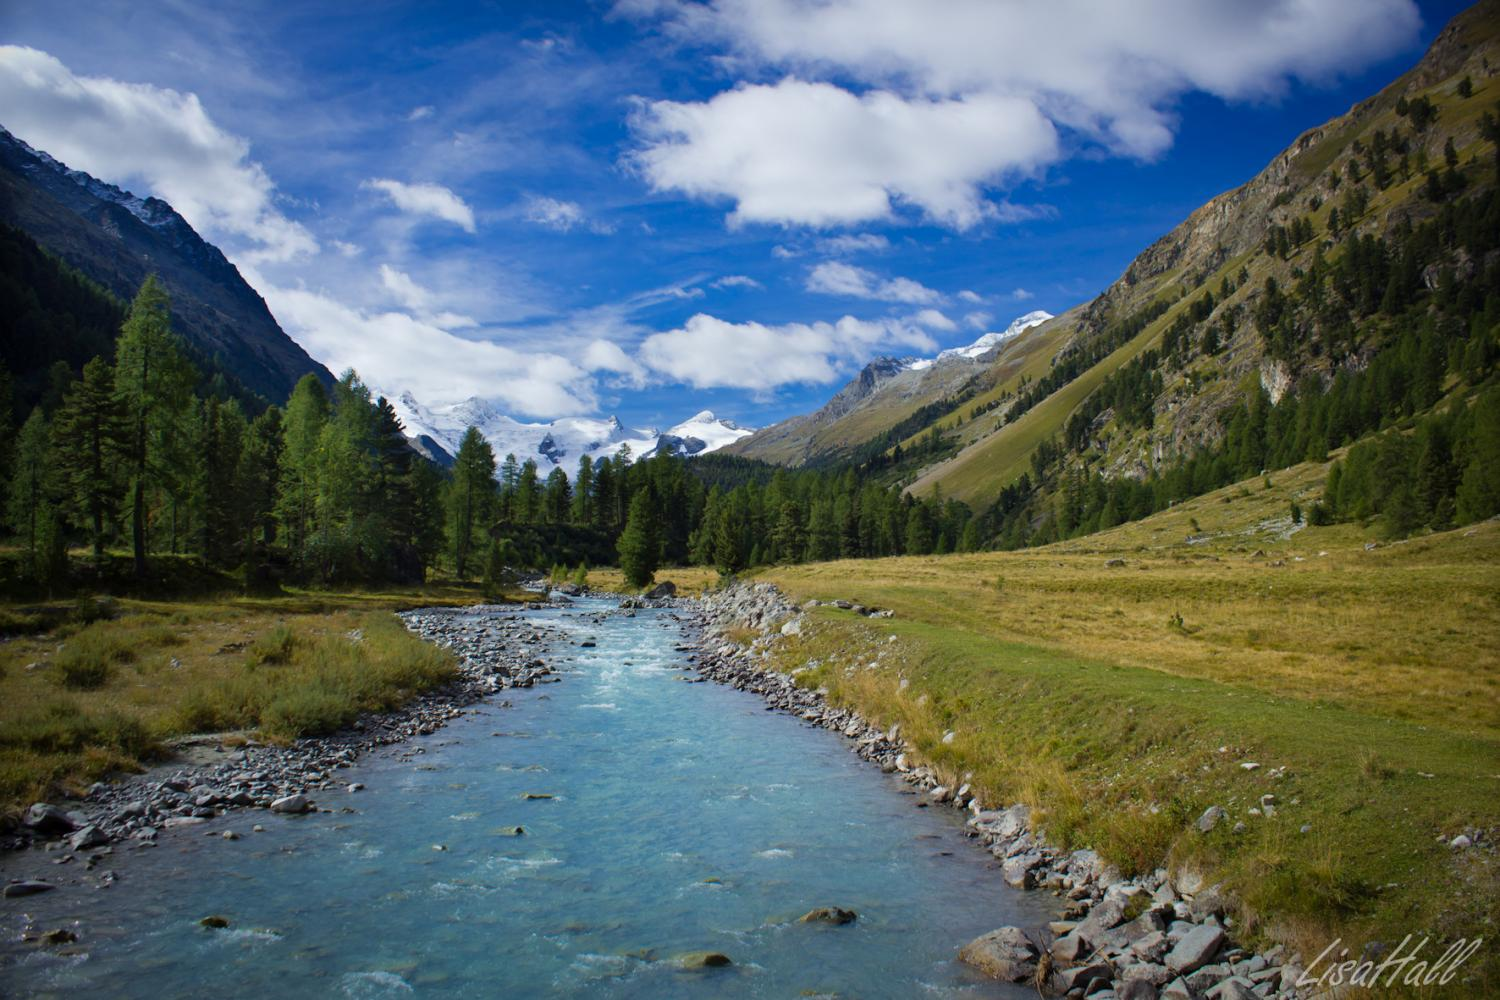 St. Moritz and the Engadine Valley walking tour - Photo: Lisa Hall